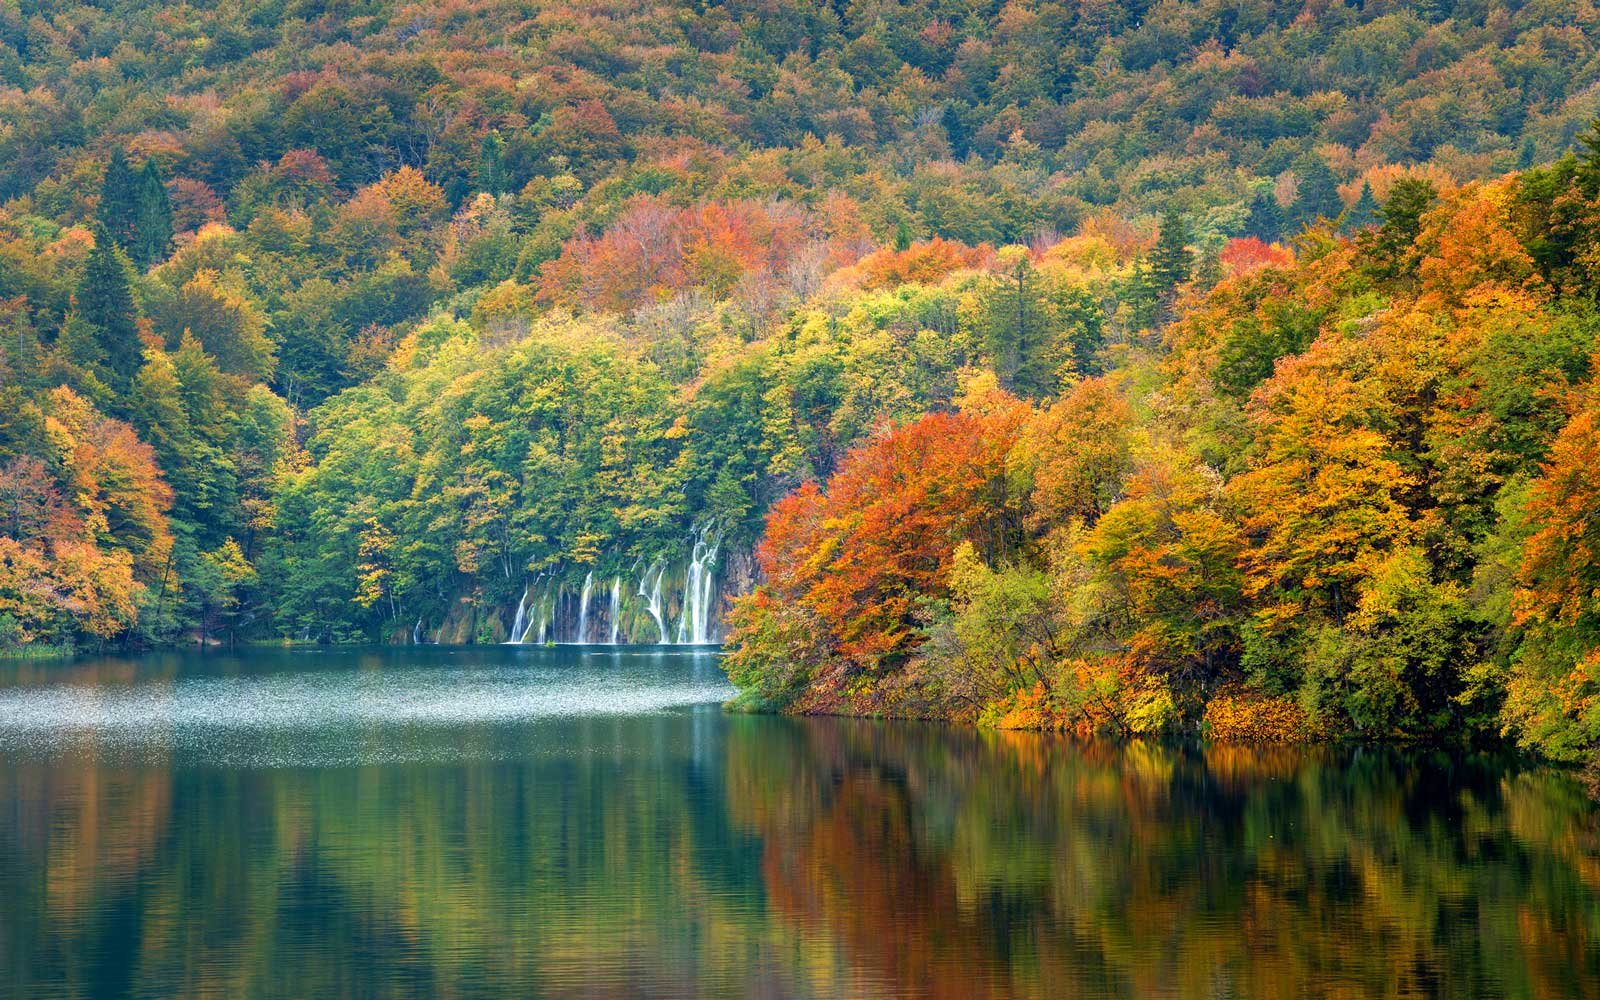 Autum colors and waterfalls of Plitvice National Park